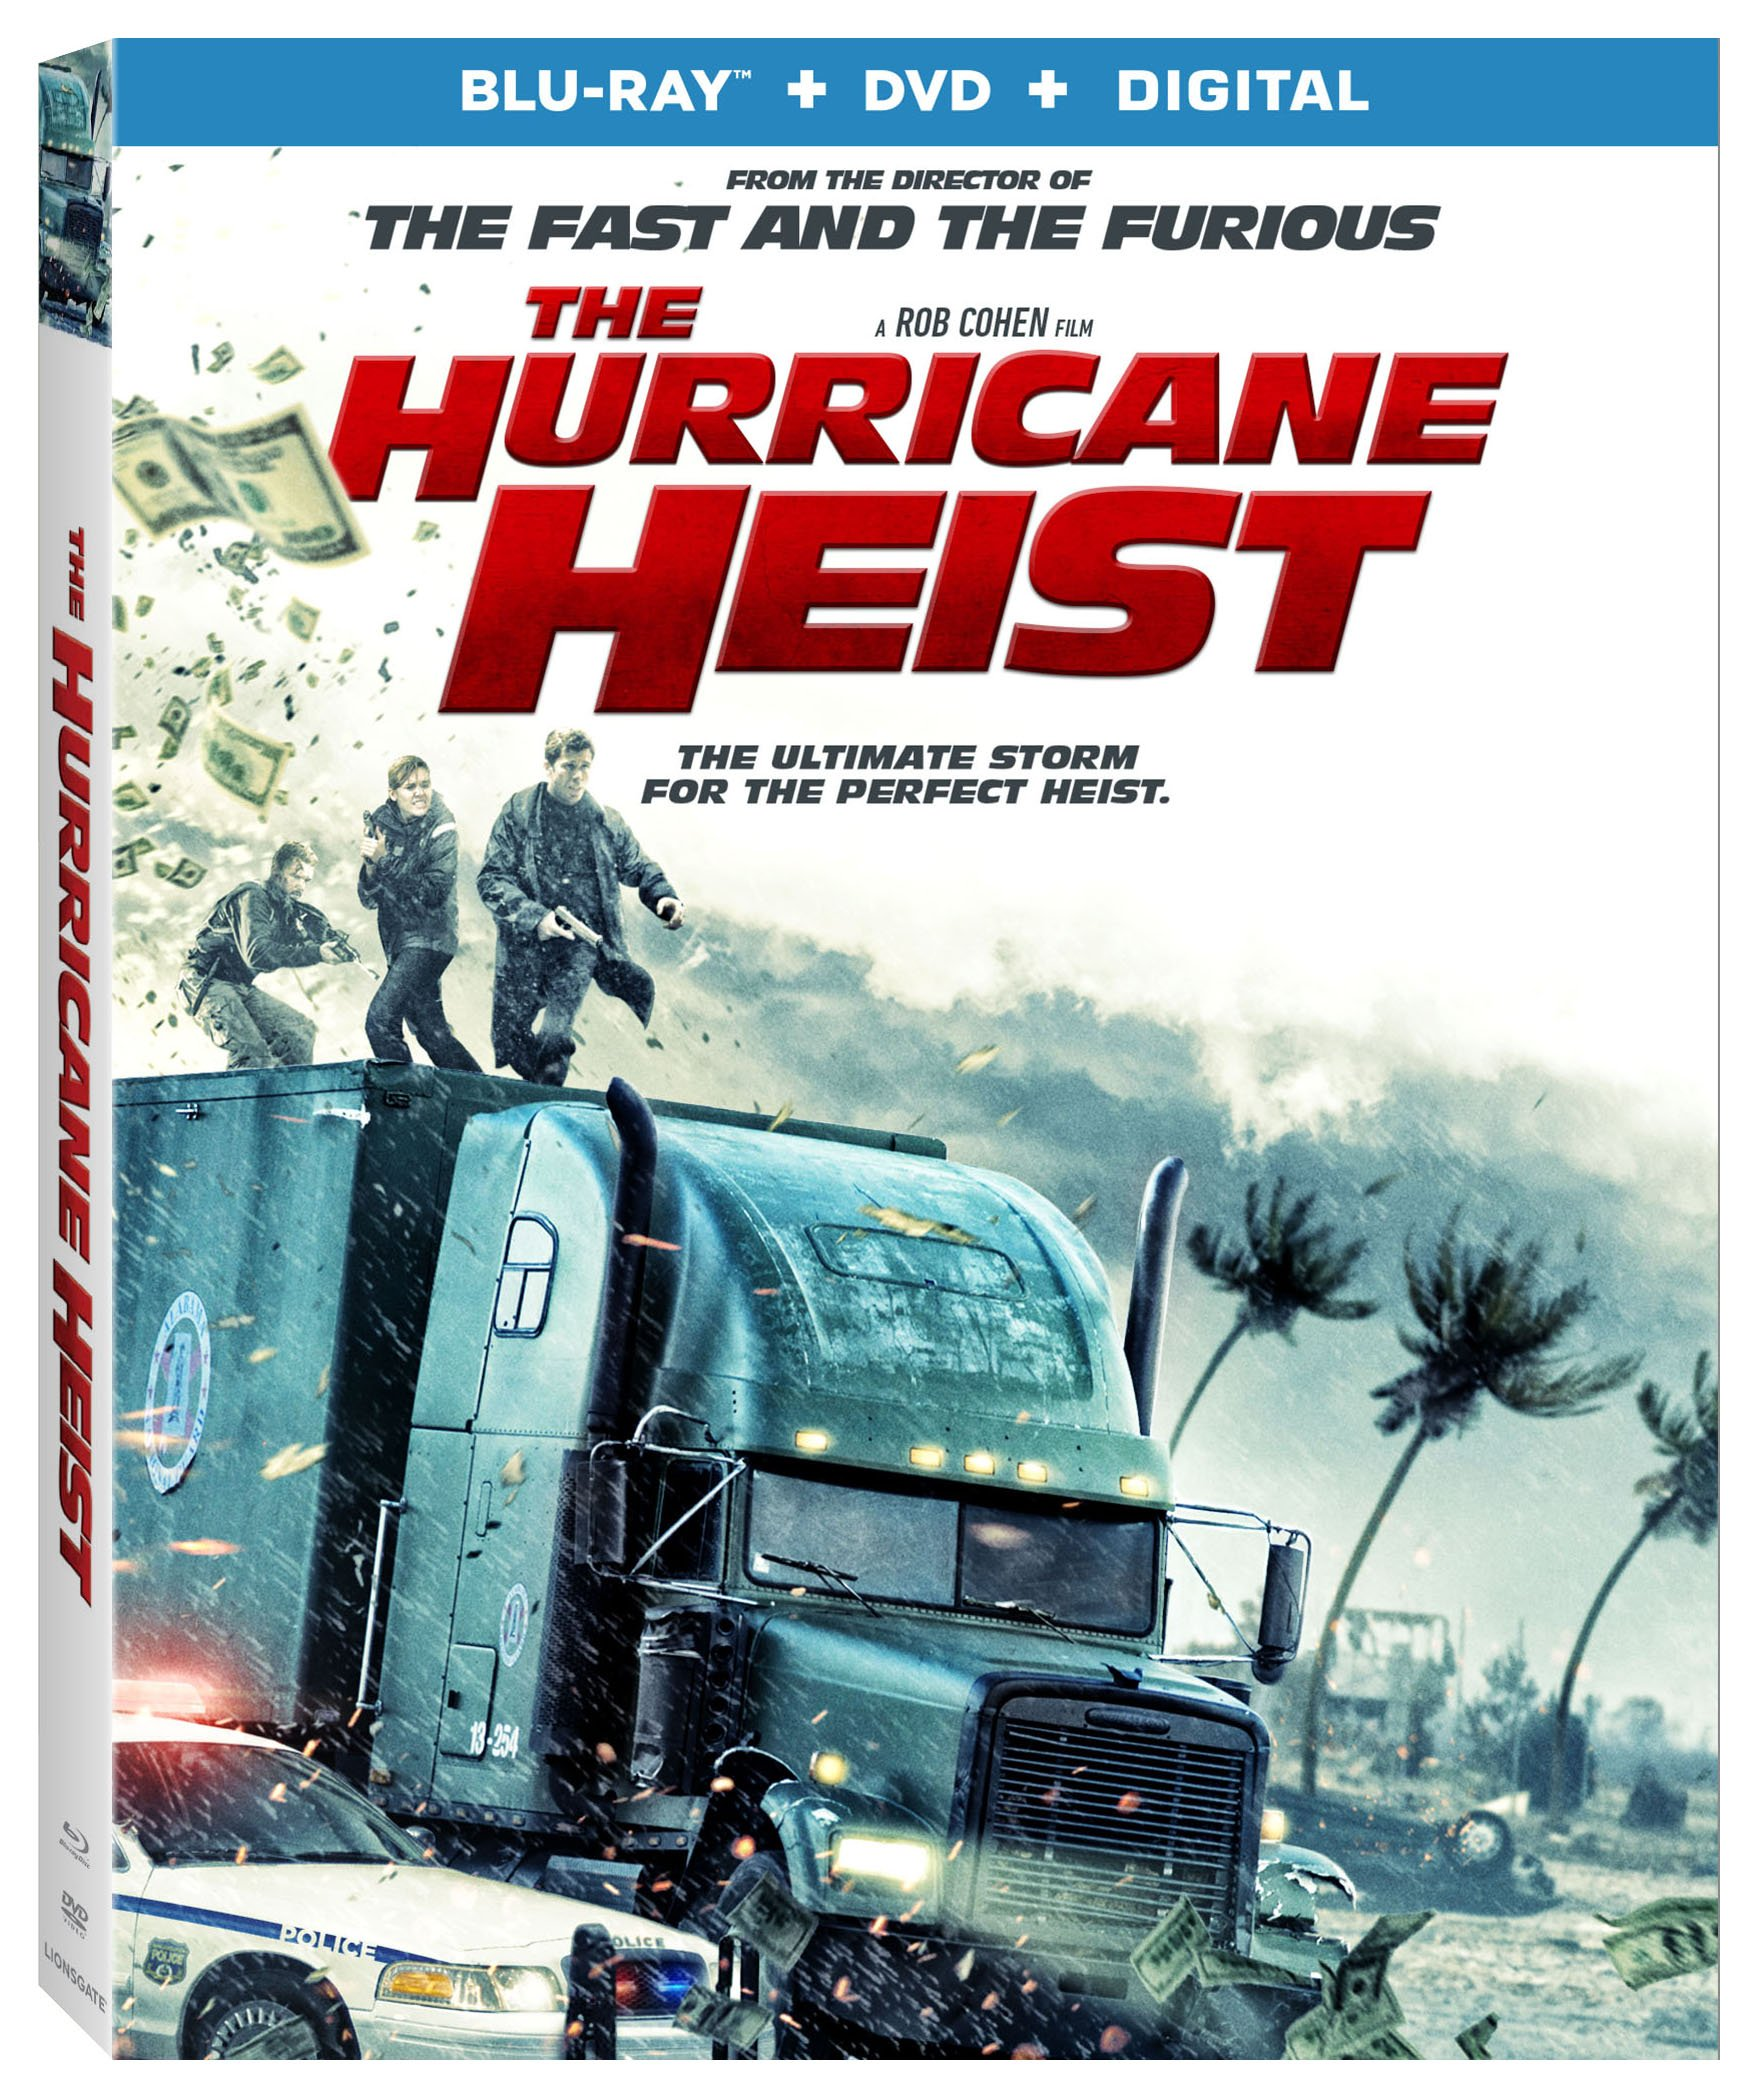 Blu-ray : The Hurricane Heist (With DVD, Ultraviolet Digital Copy, 2 Pack, Eco Amaray Case, 2PC)